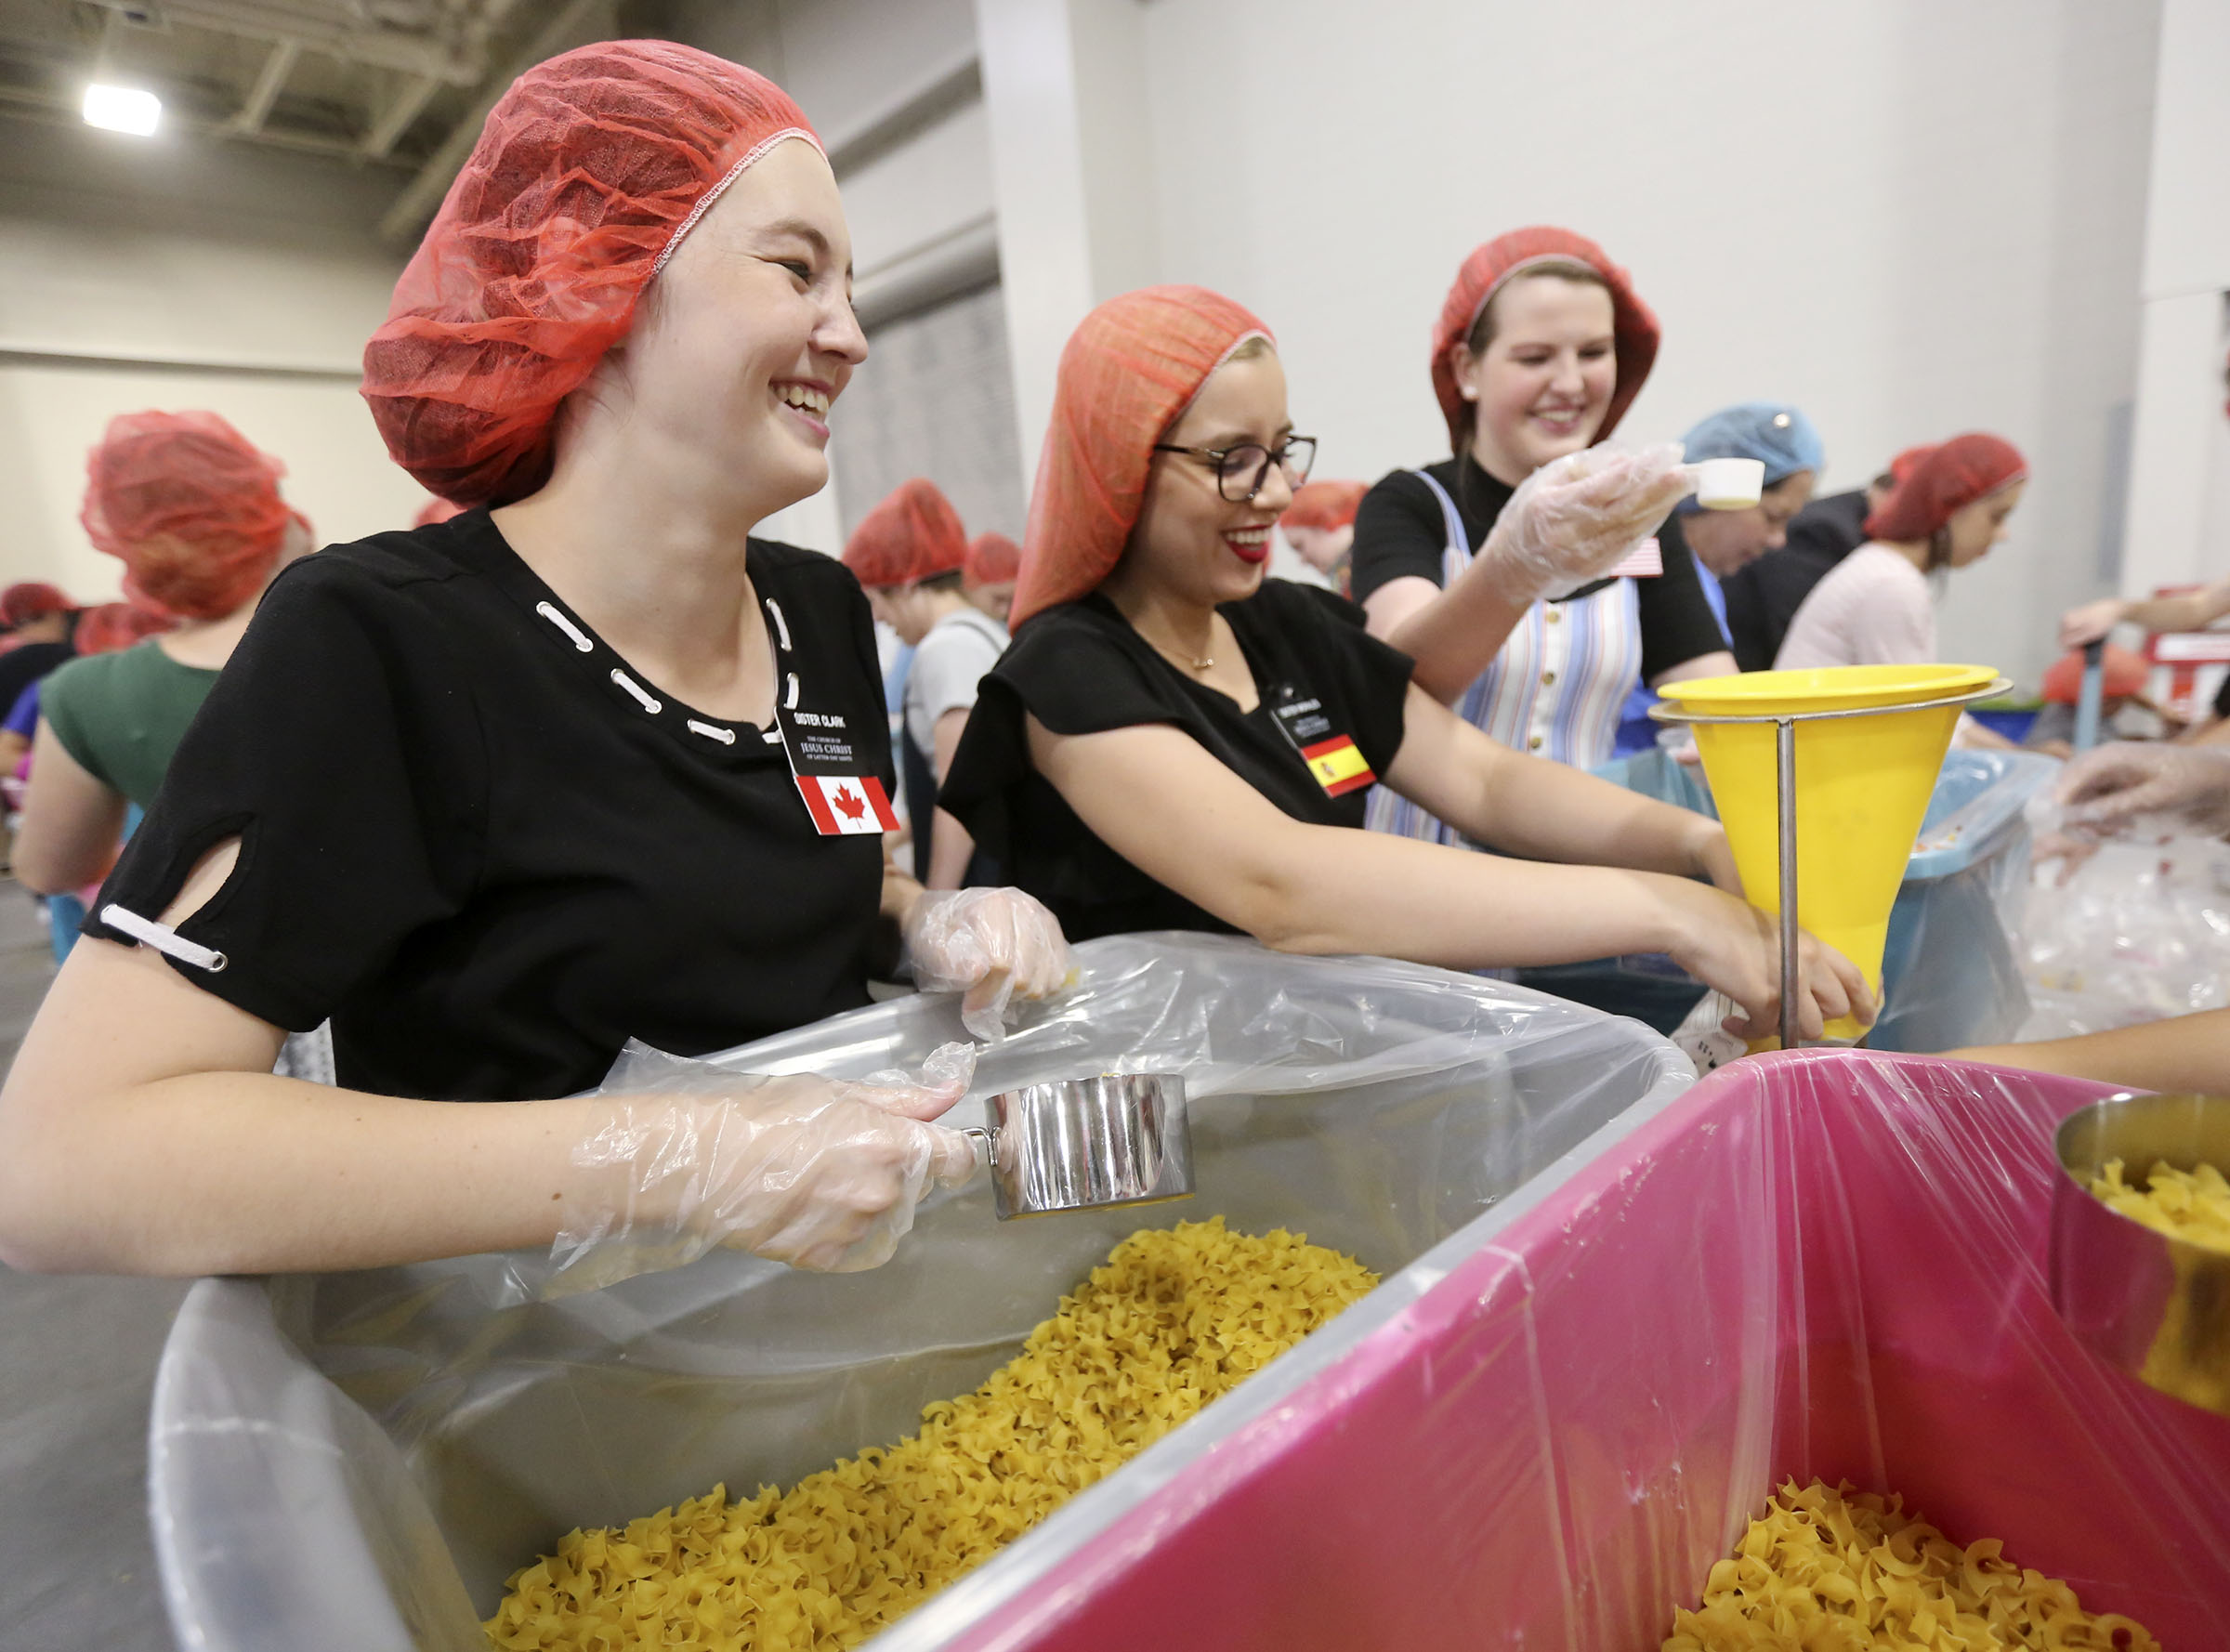 Temple Square missionaries Sister Zoey Clark, Sister Priscilla Morales and Sister Callie Jorgensen package pasta dinners for a service project during the 68th United Nations Civil Society Conference at the Salt Palace Convention Center in Salt Lake City on Monday, Aug. 26, 2019.